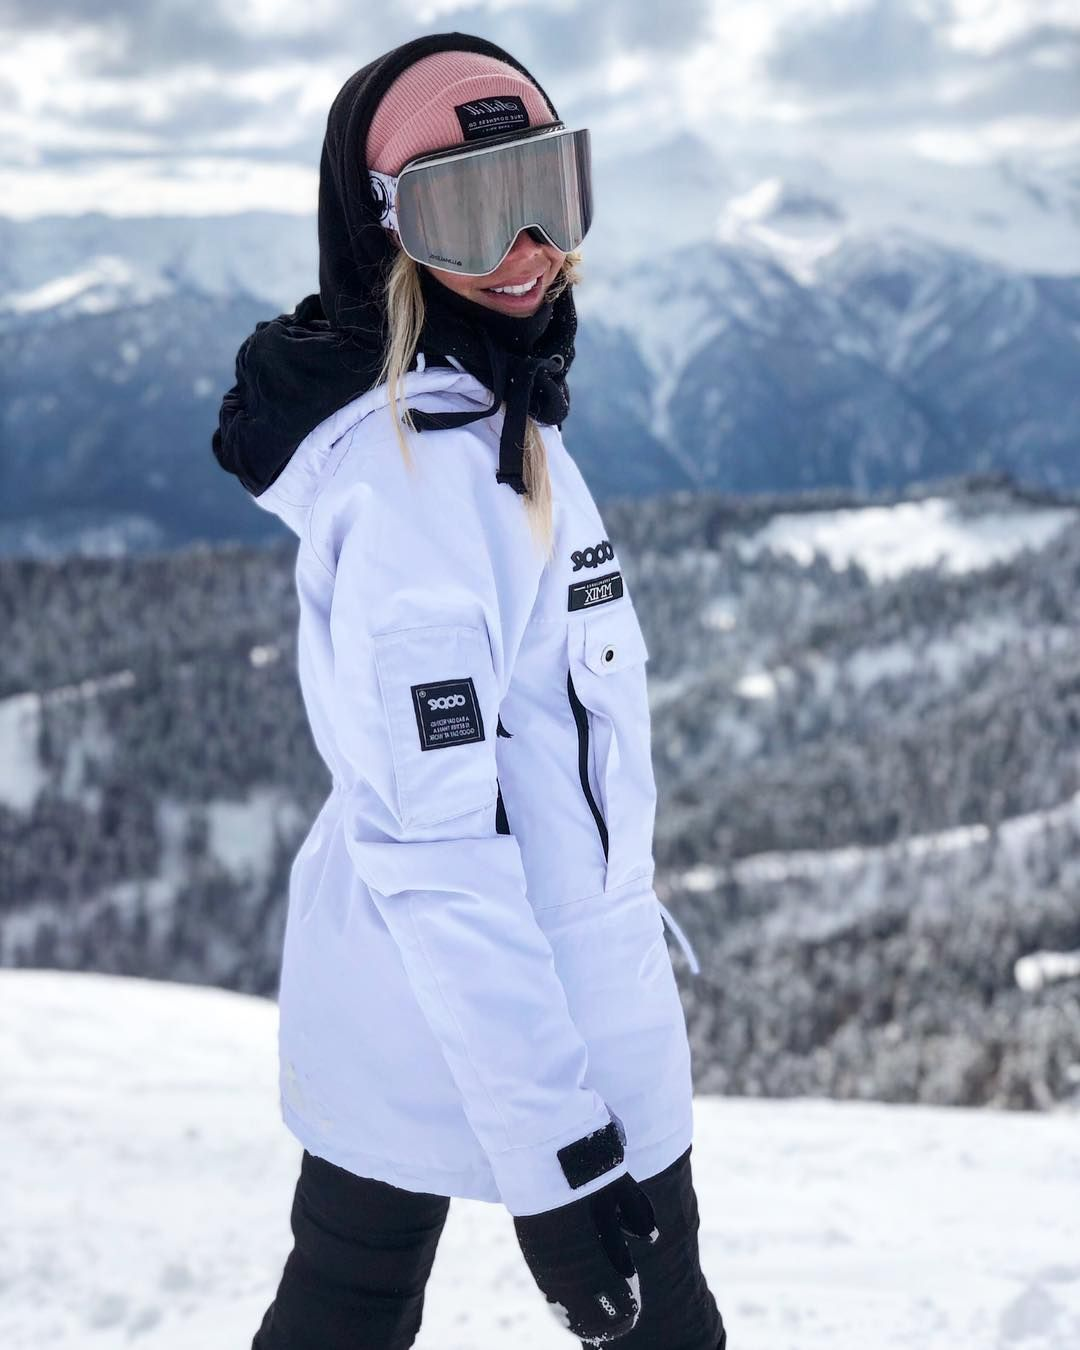 snowboarding gear womens in 2020 | Skiing outfit